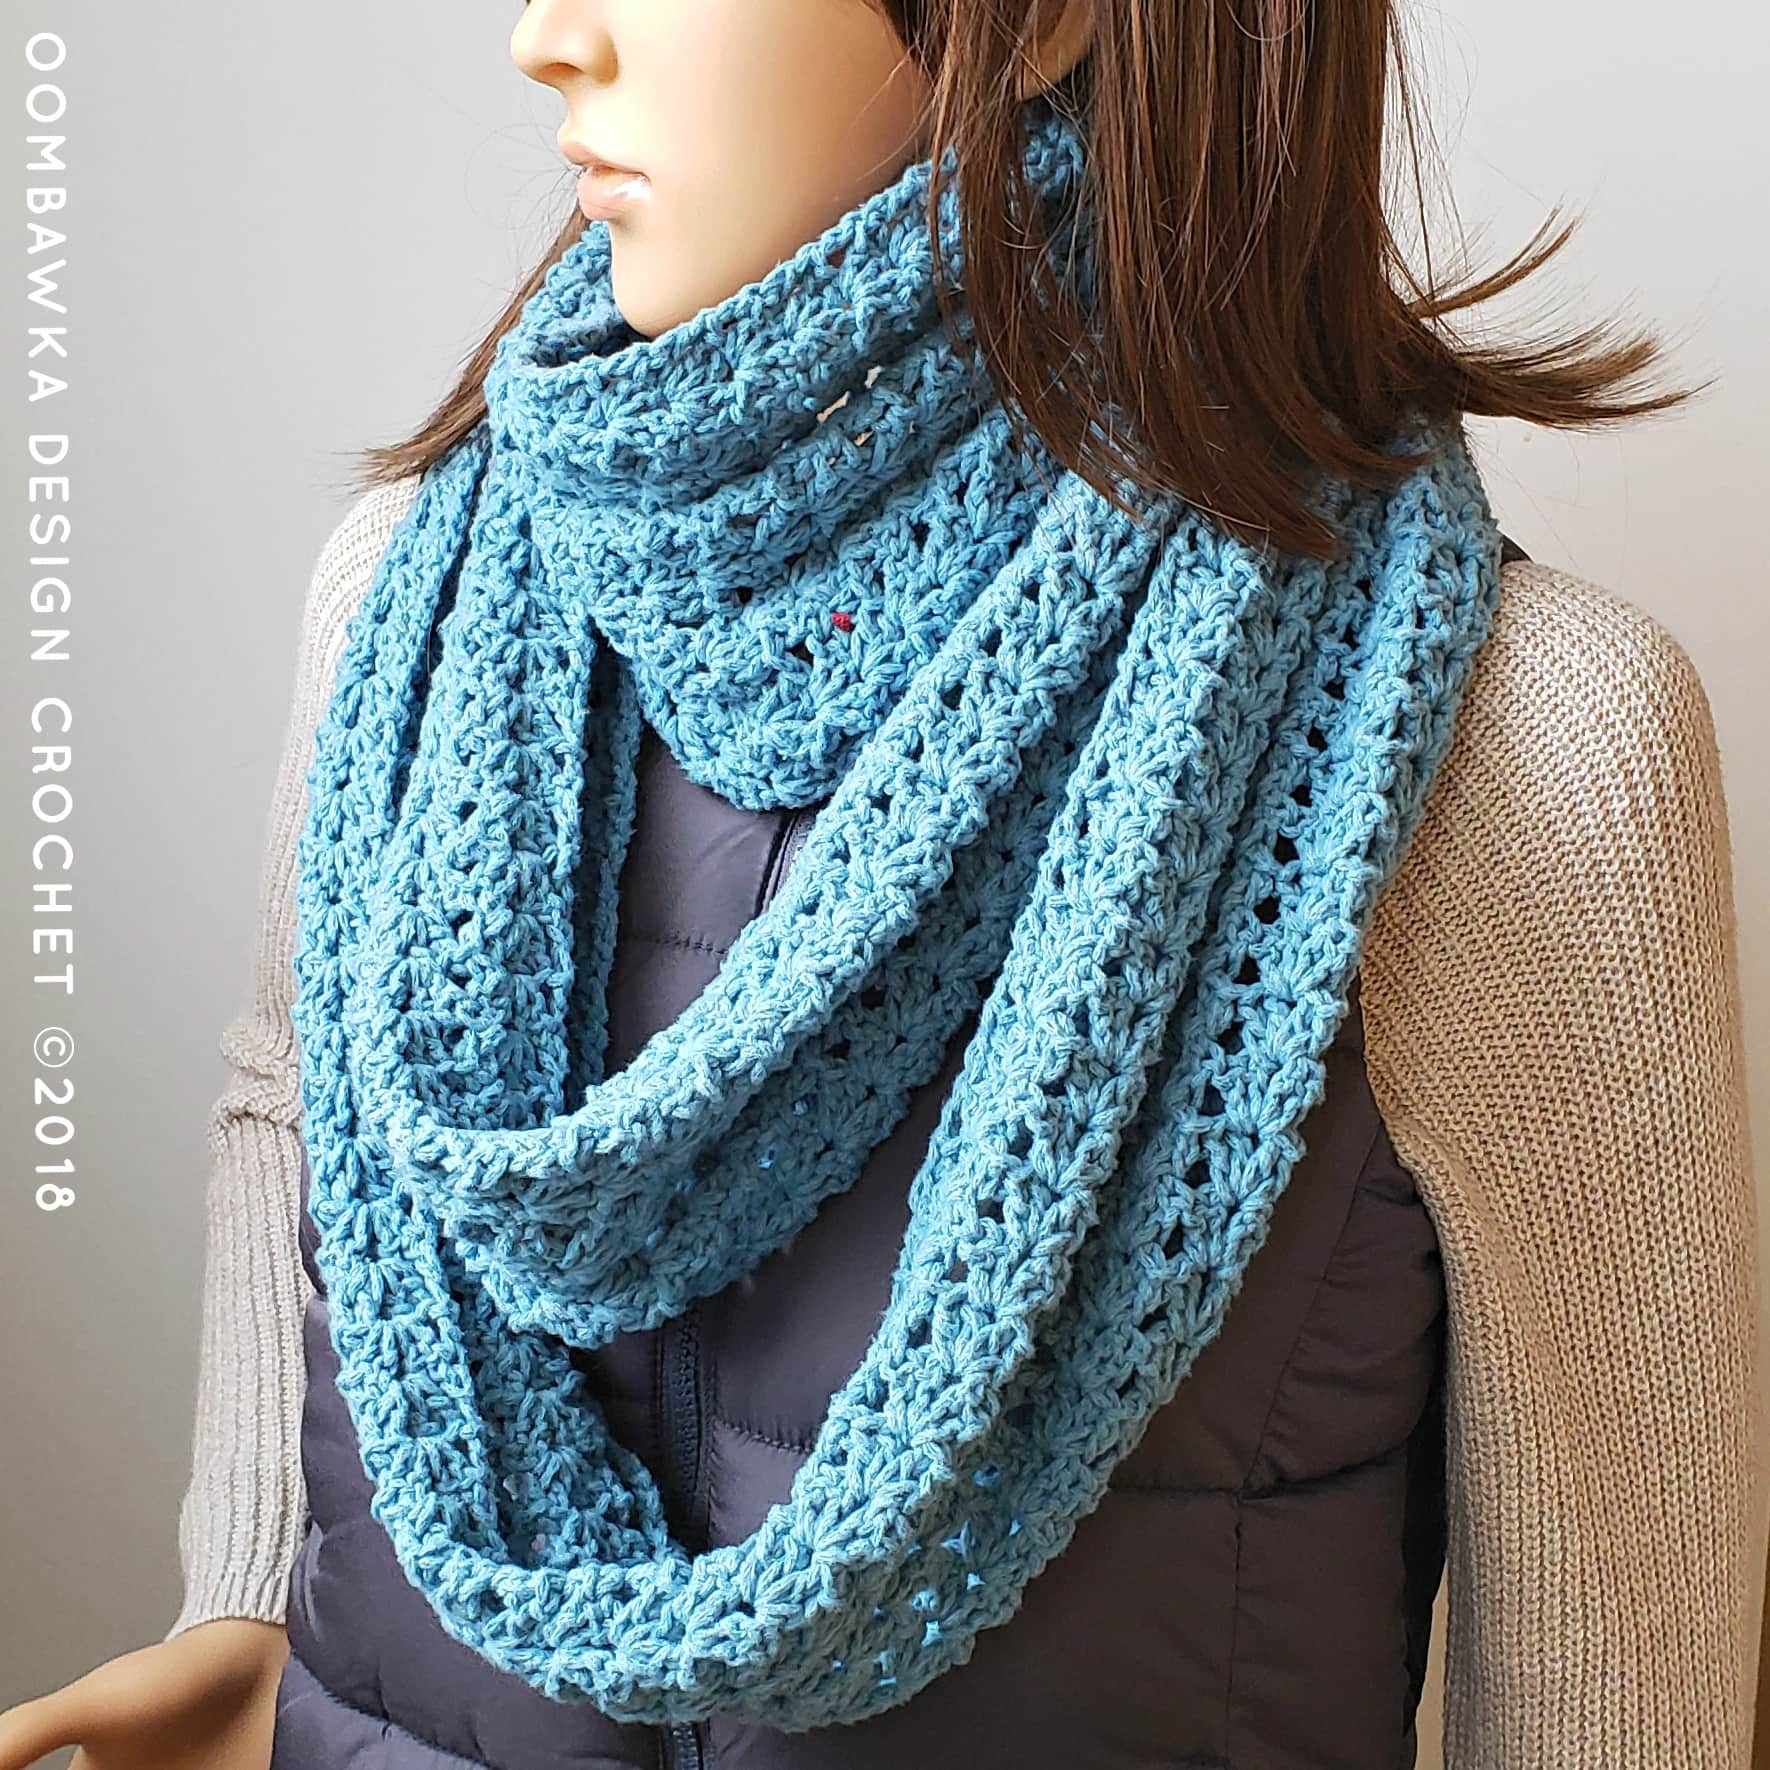 Iris Everyday Infinity Scarf Pattern from Oombawka Design Crochet